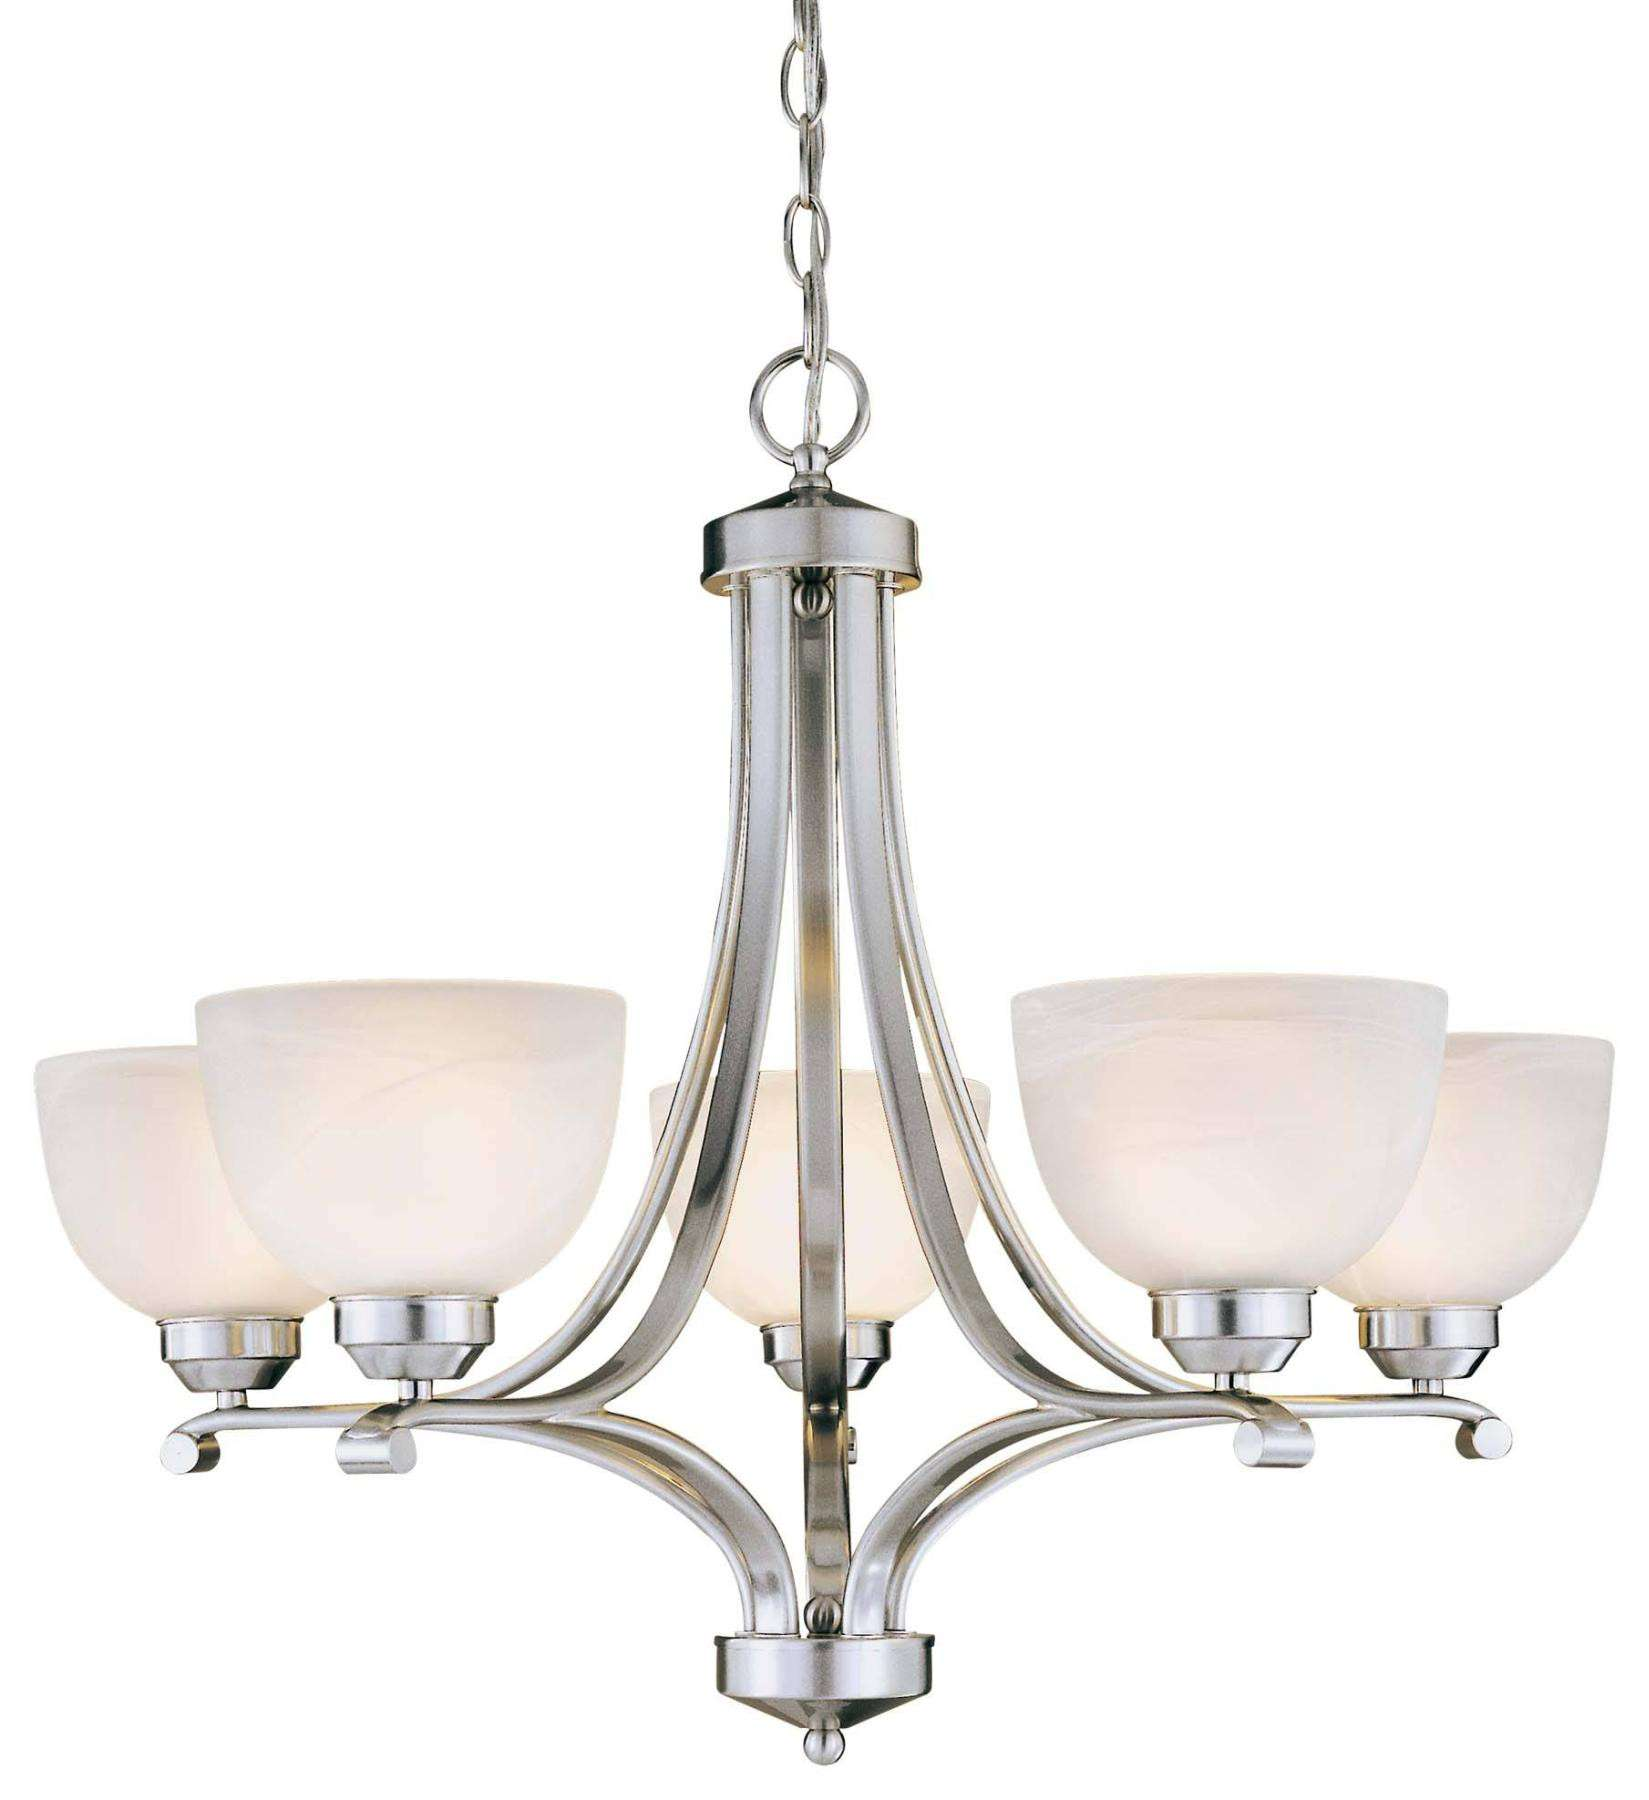 Minka Lavery Lighting 1425-84 9 Light Chandelier in Brushed Nickel finish